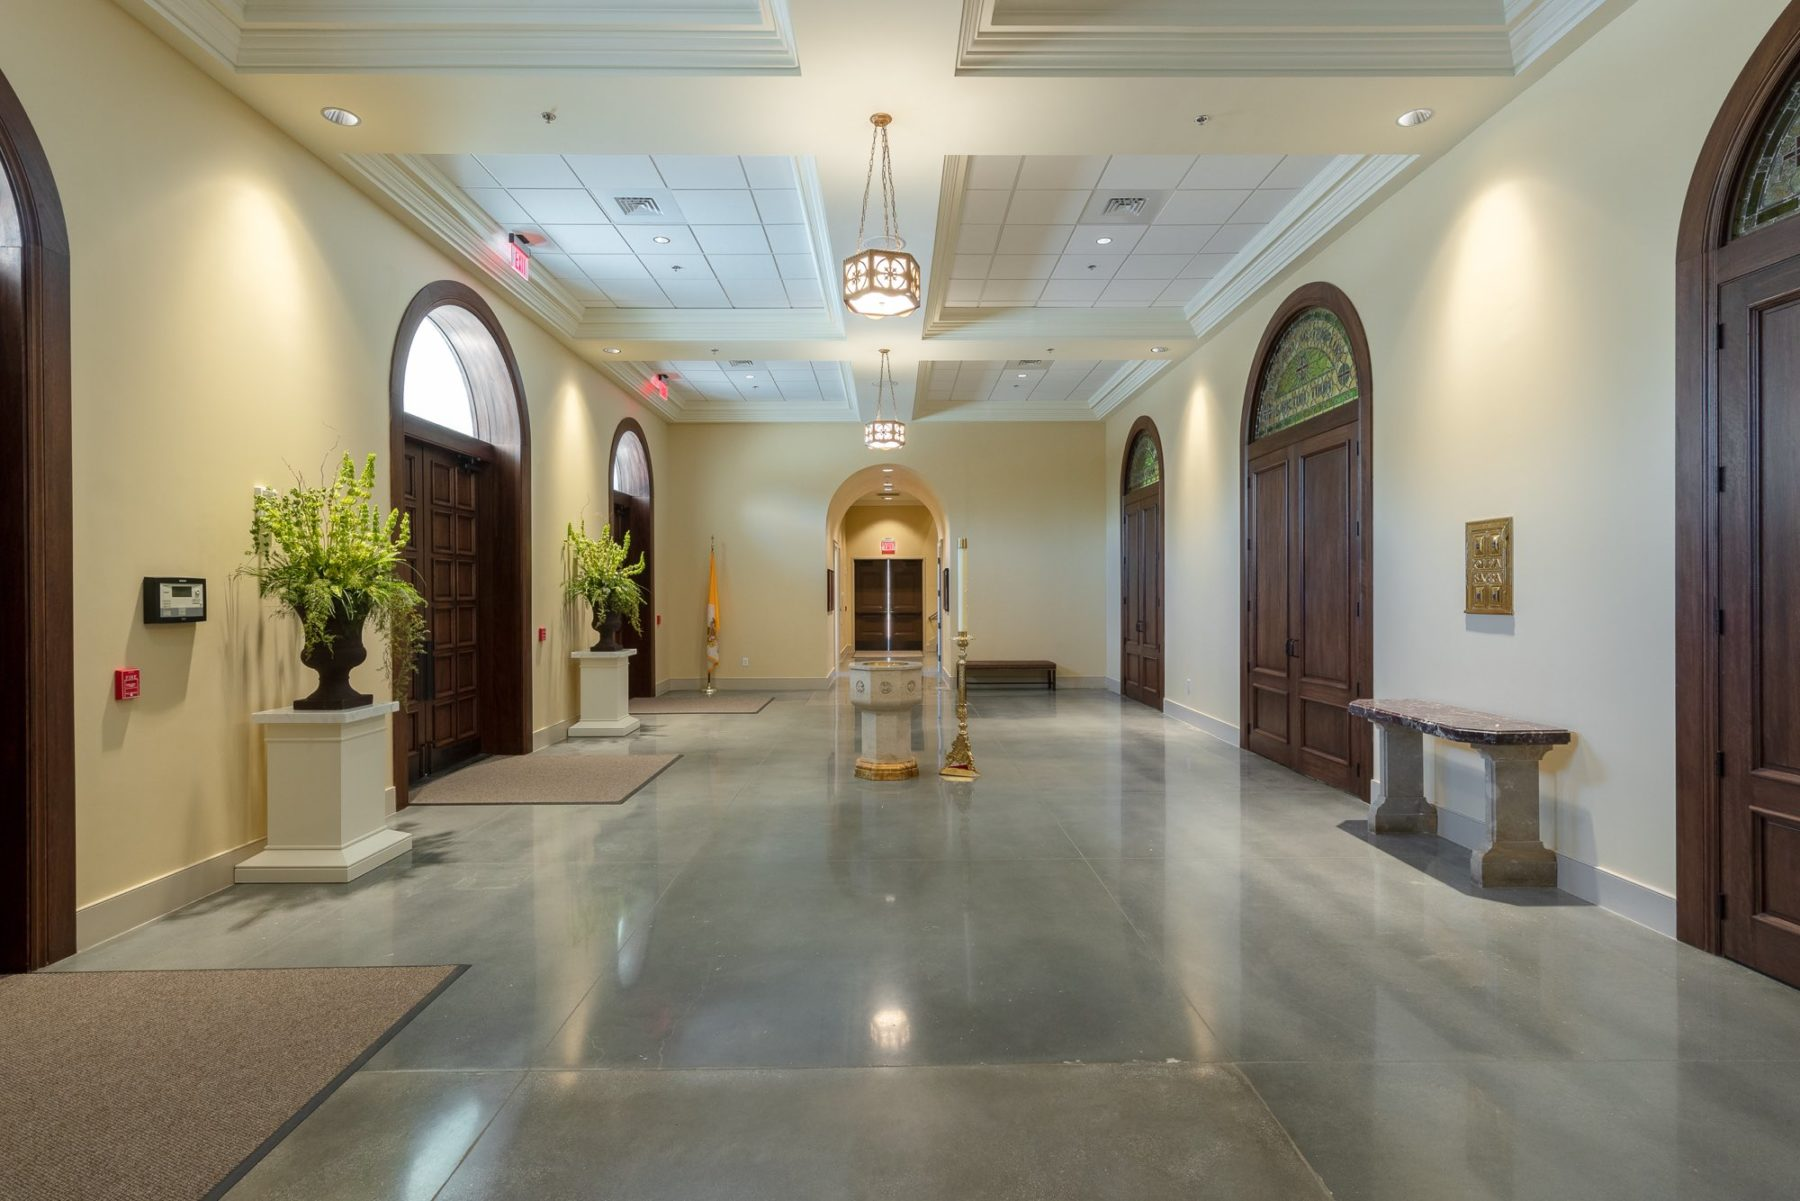 Light filled narthex with large wooden doors holy water font and easter candle classical details by Harrison Design